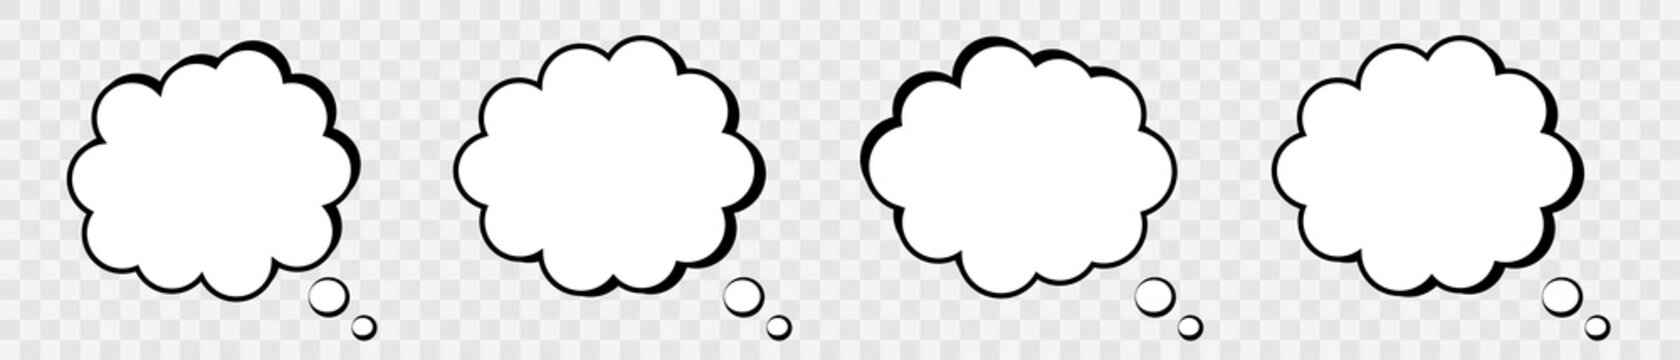 Blank retro comic speech bubble. Set clouds isolated on gray background. Vector design elements for your project, eps10.